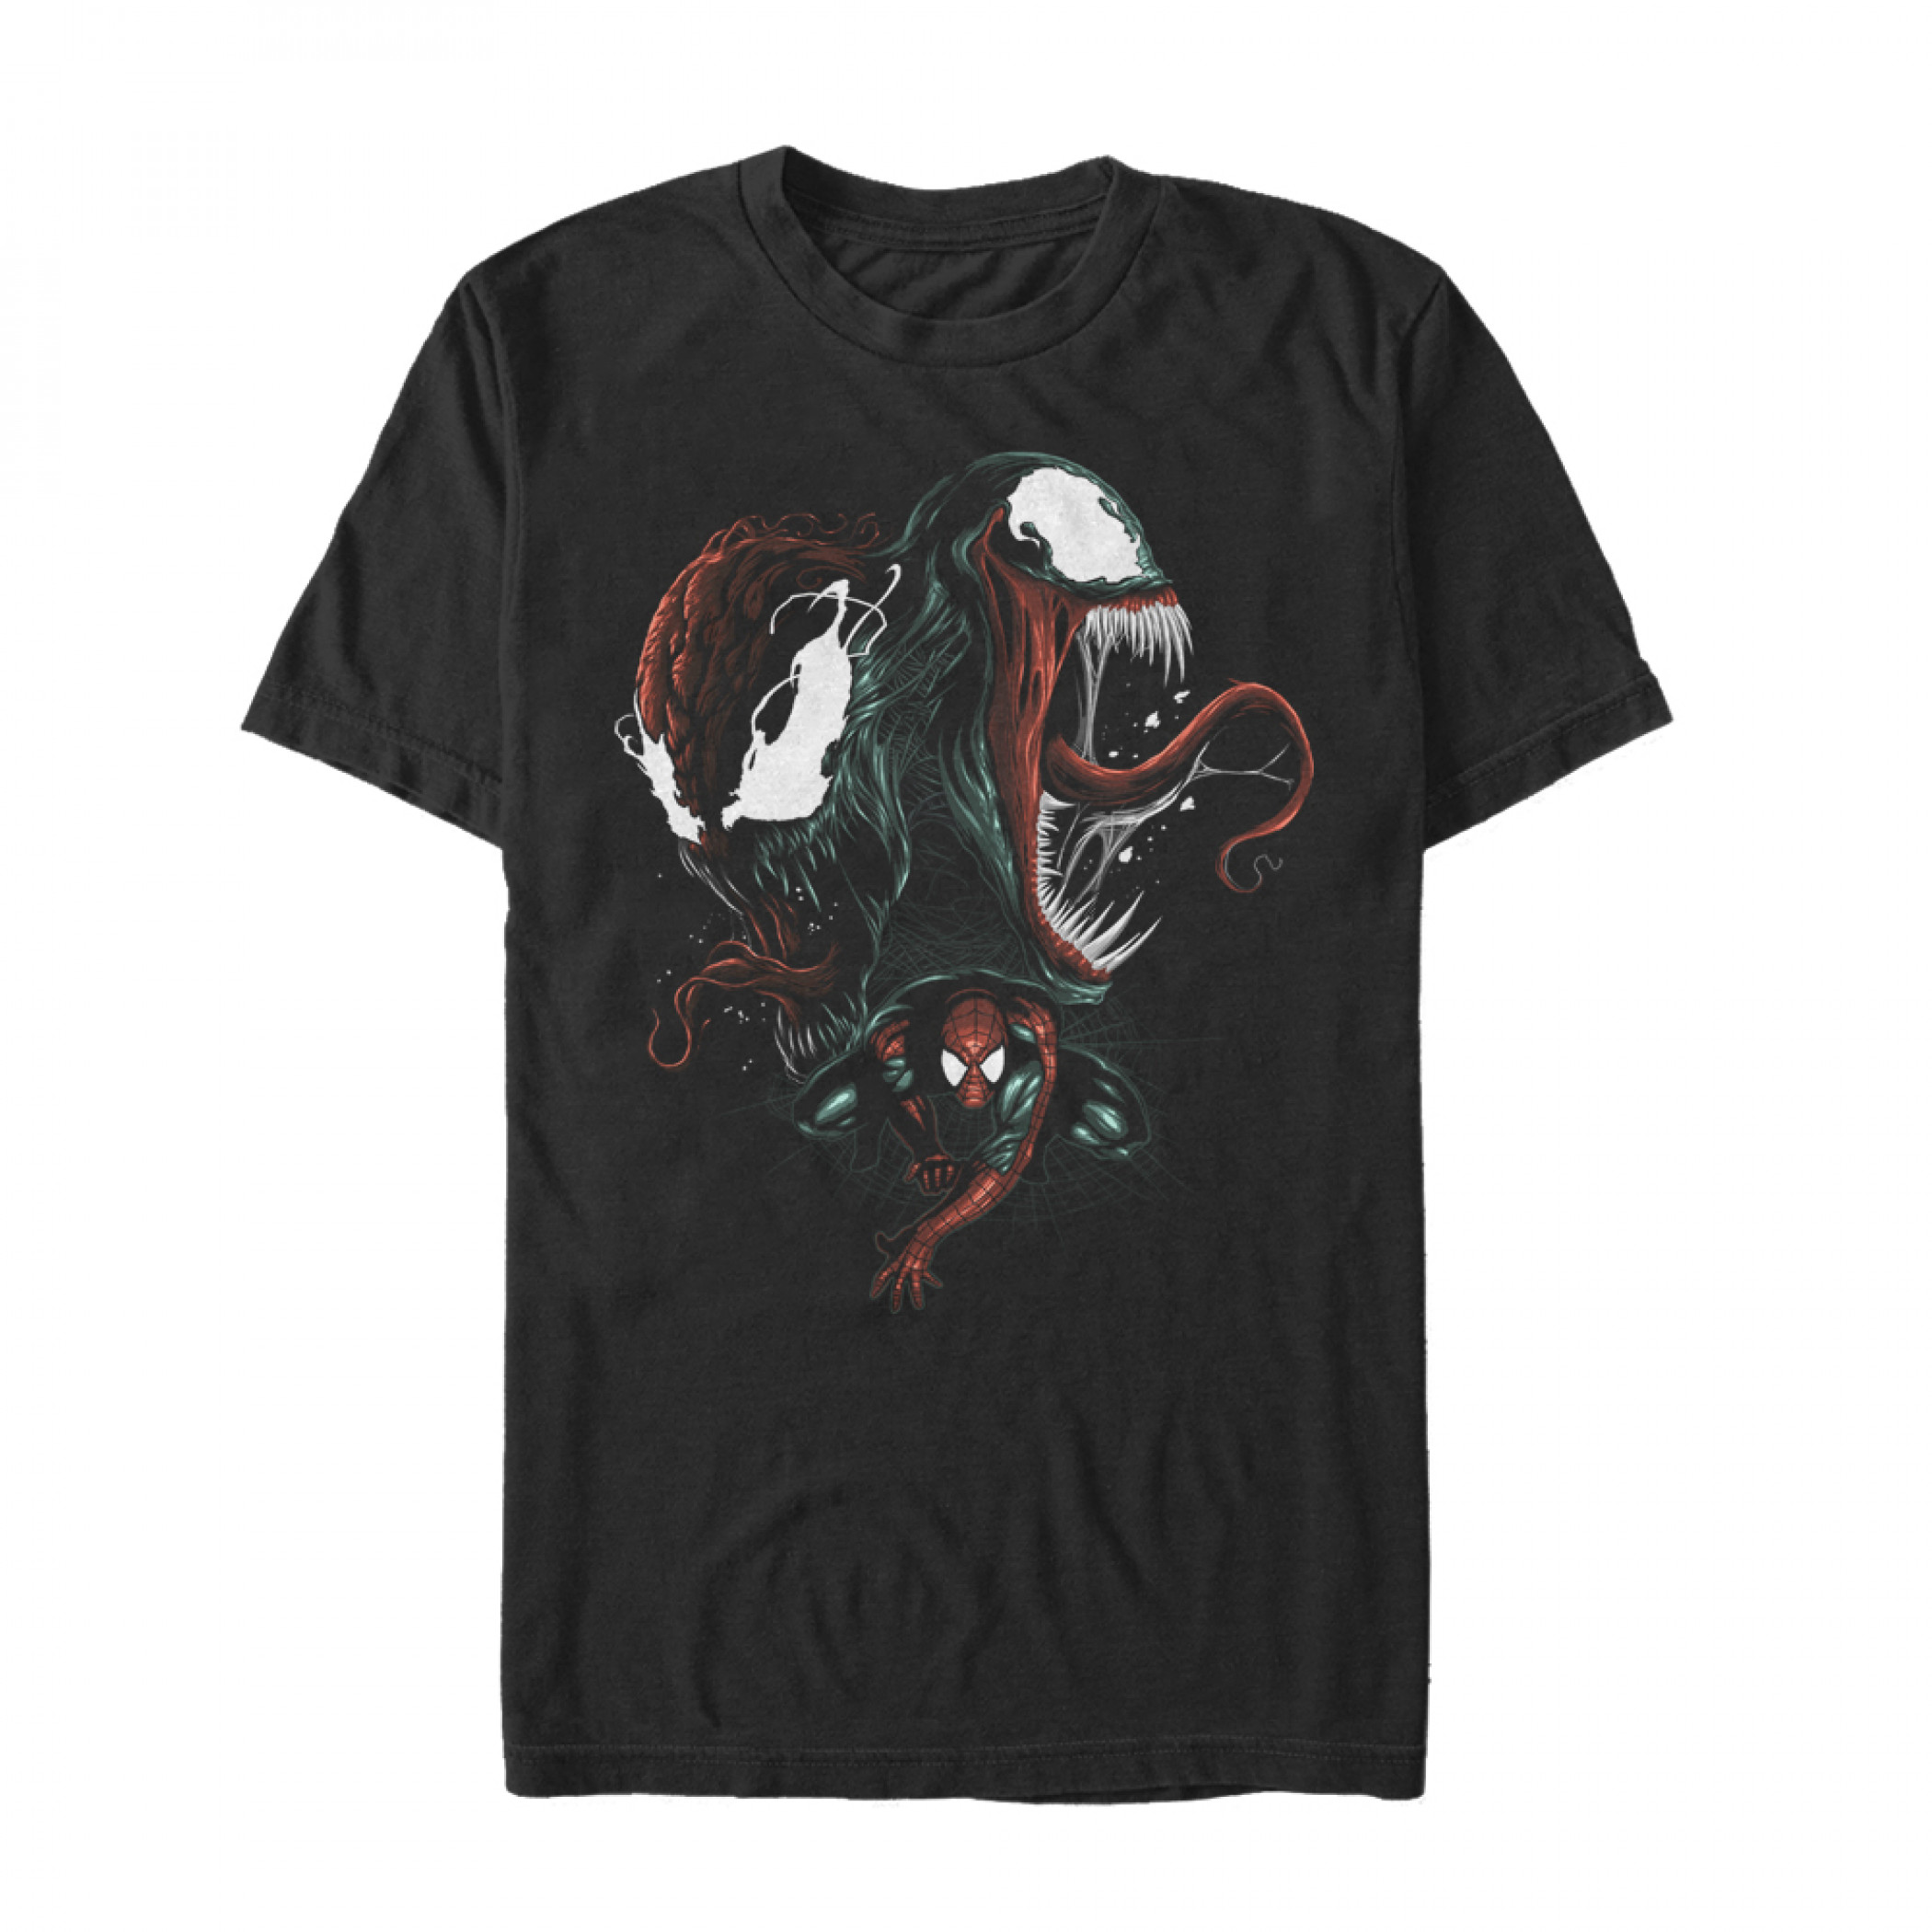 Spider-Man Venom and Carnage Bad Conscience T-Shirt